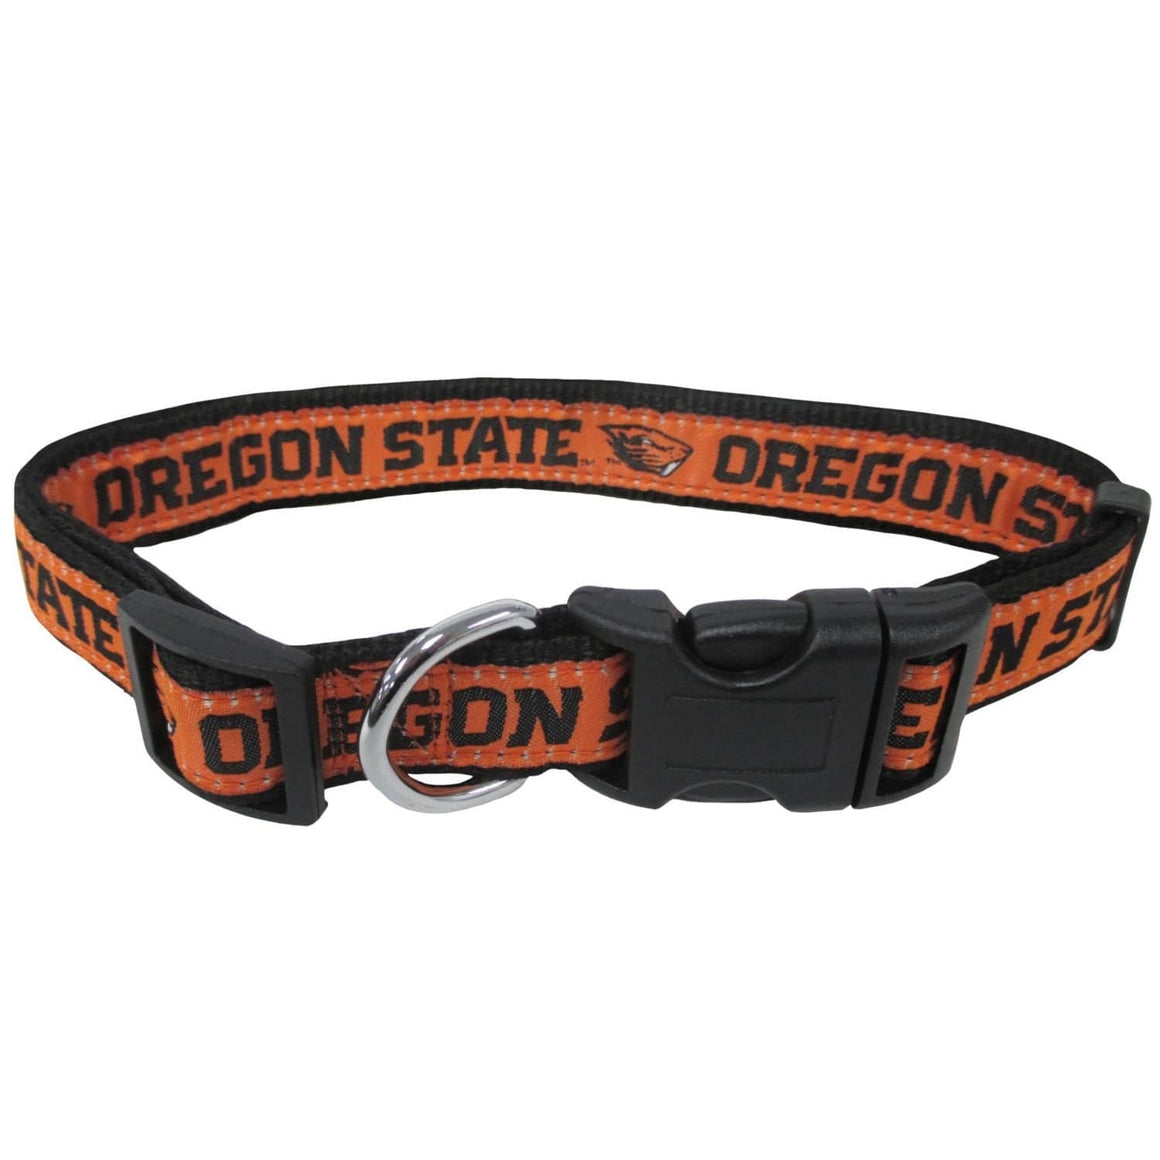 Pets First Dog-products NCAA Small Oregon State Beavers Pet Collar By Pets First